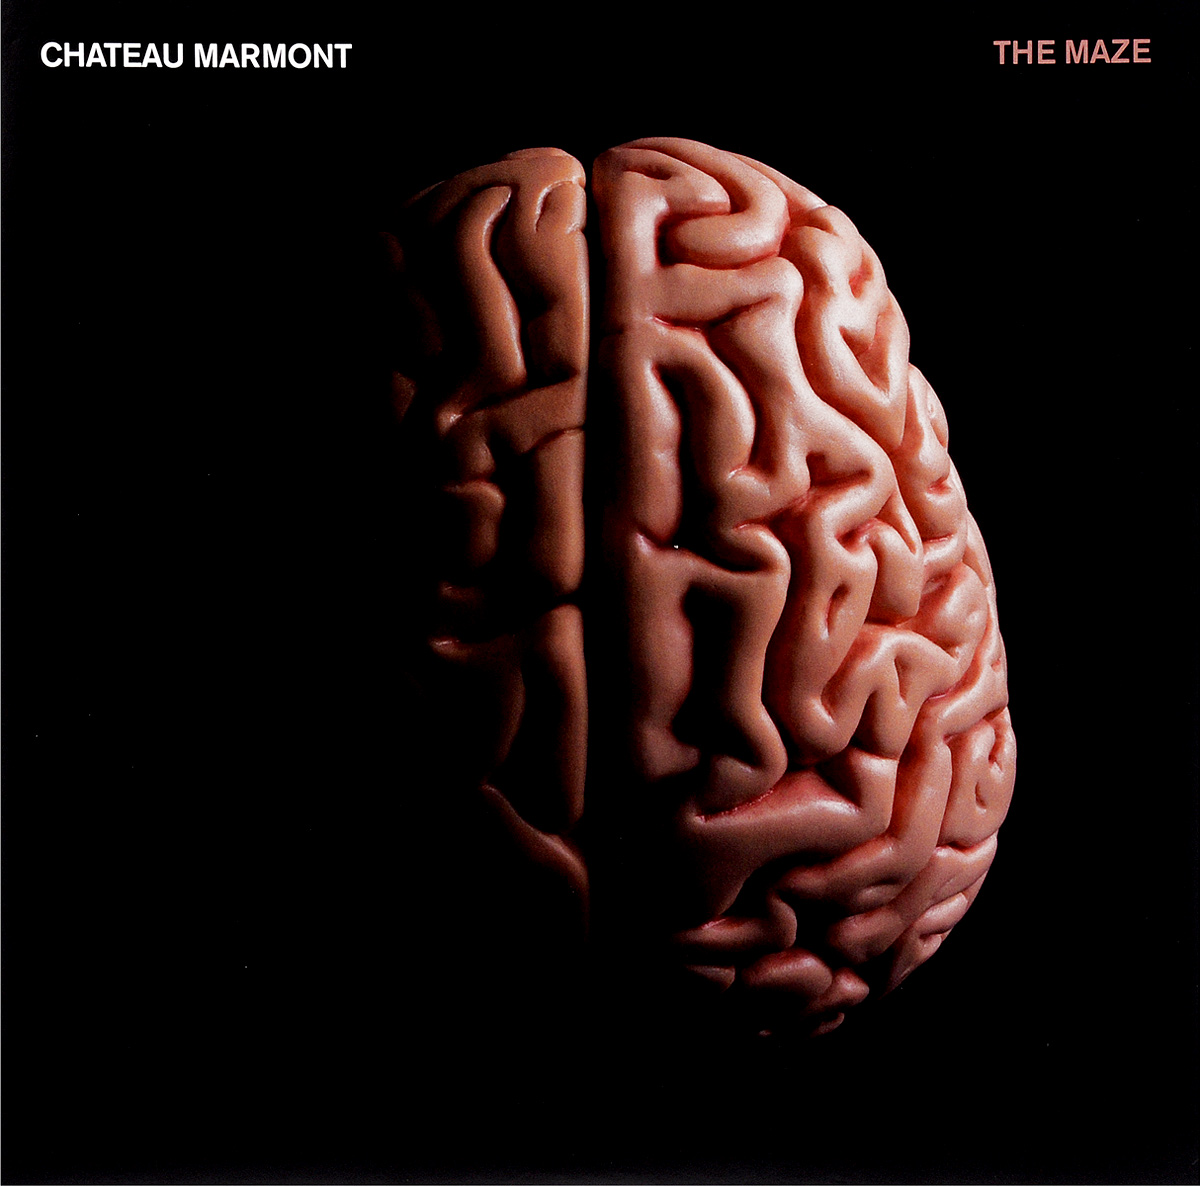 Chateau Marmont Chateau Marmont. The Maze (2 LP) матрас орматек optima support evs mini 200x195